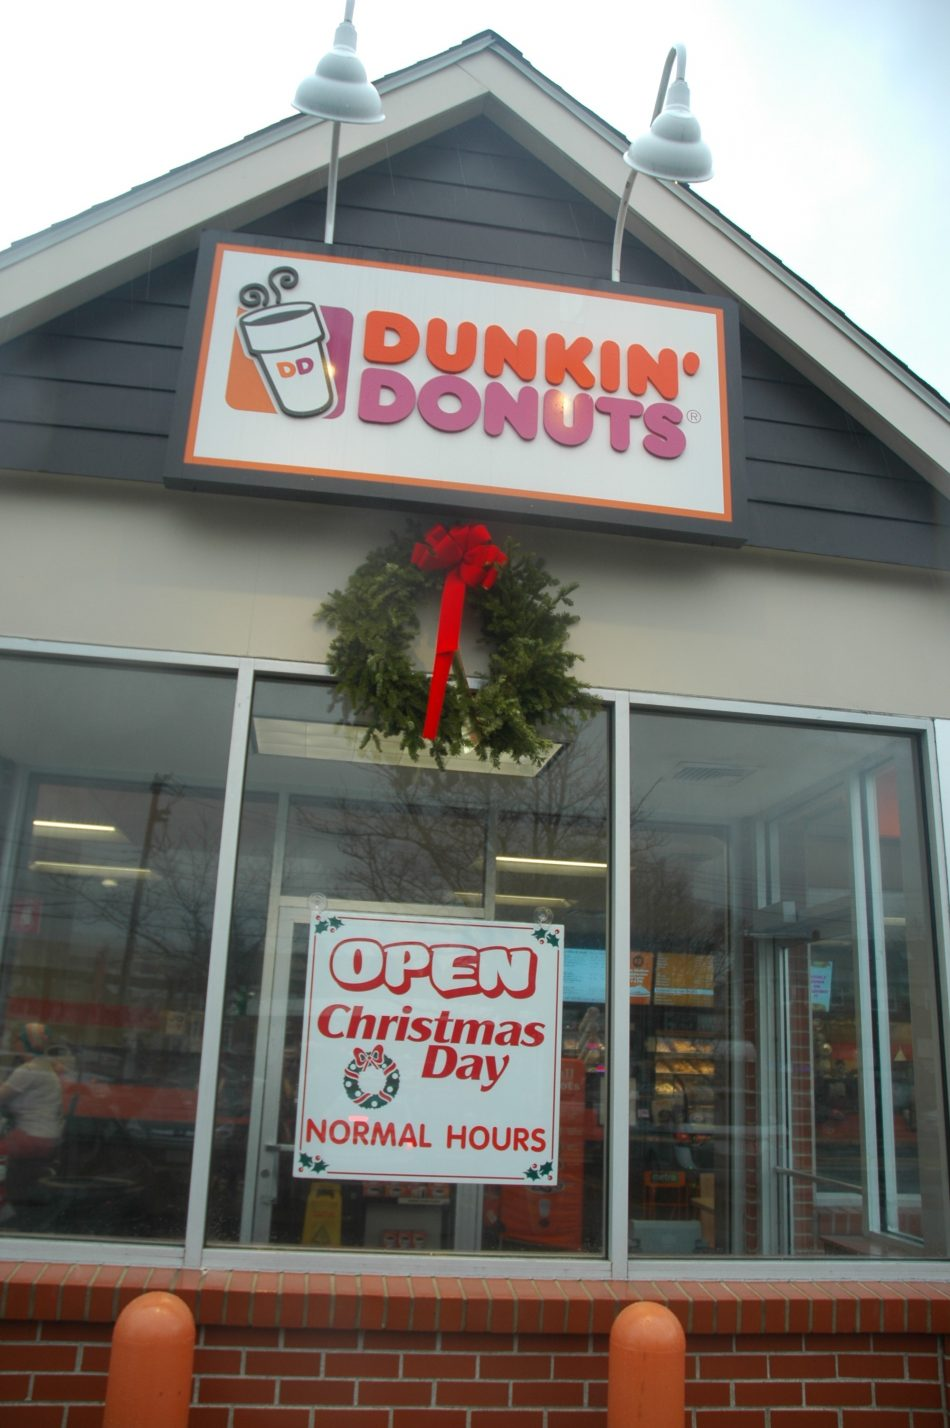 The Dunkin' Donuts at 448 Main Street in Watertown proudly announced it planned to be open all day Christmas. This sign was in the window Friday, ...